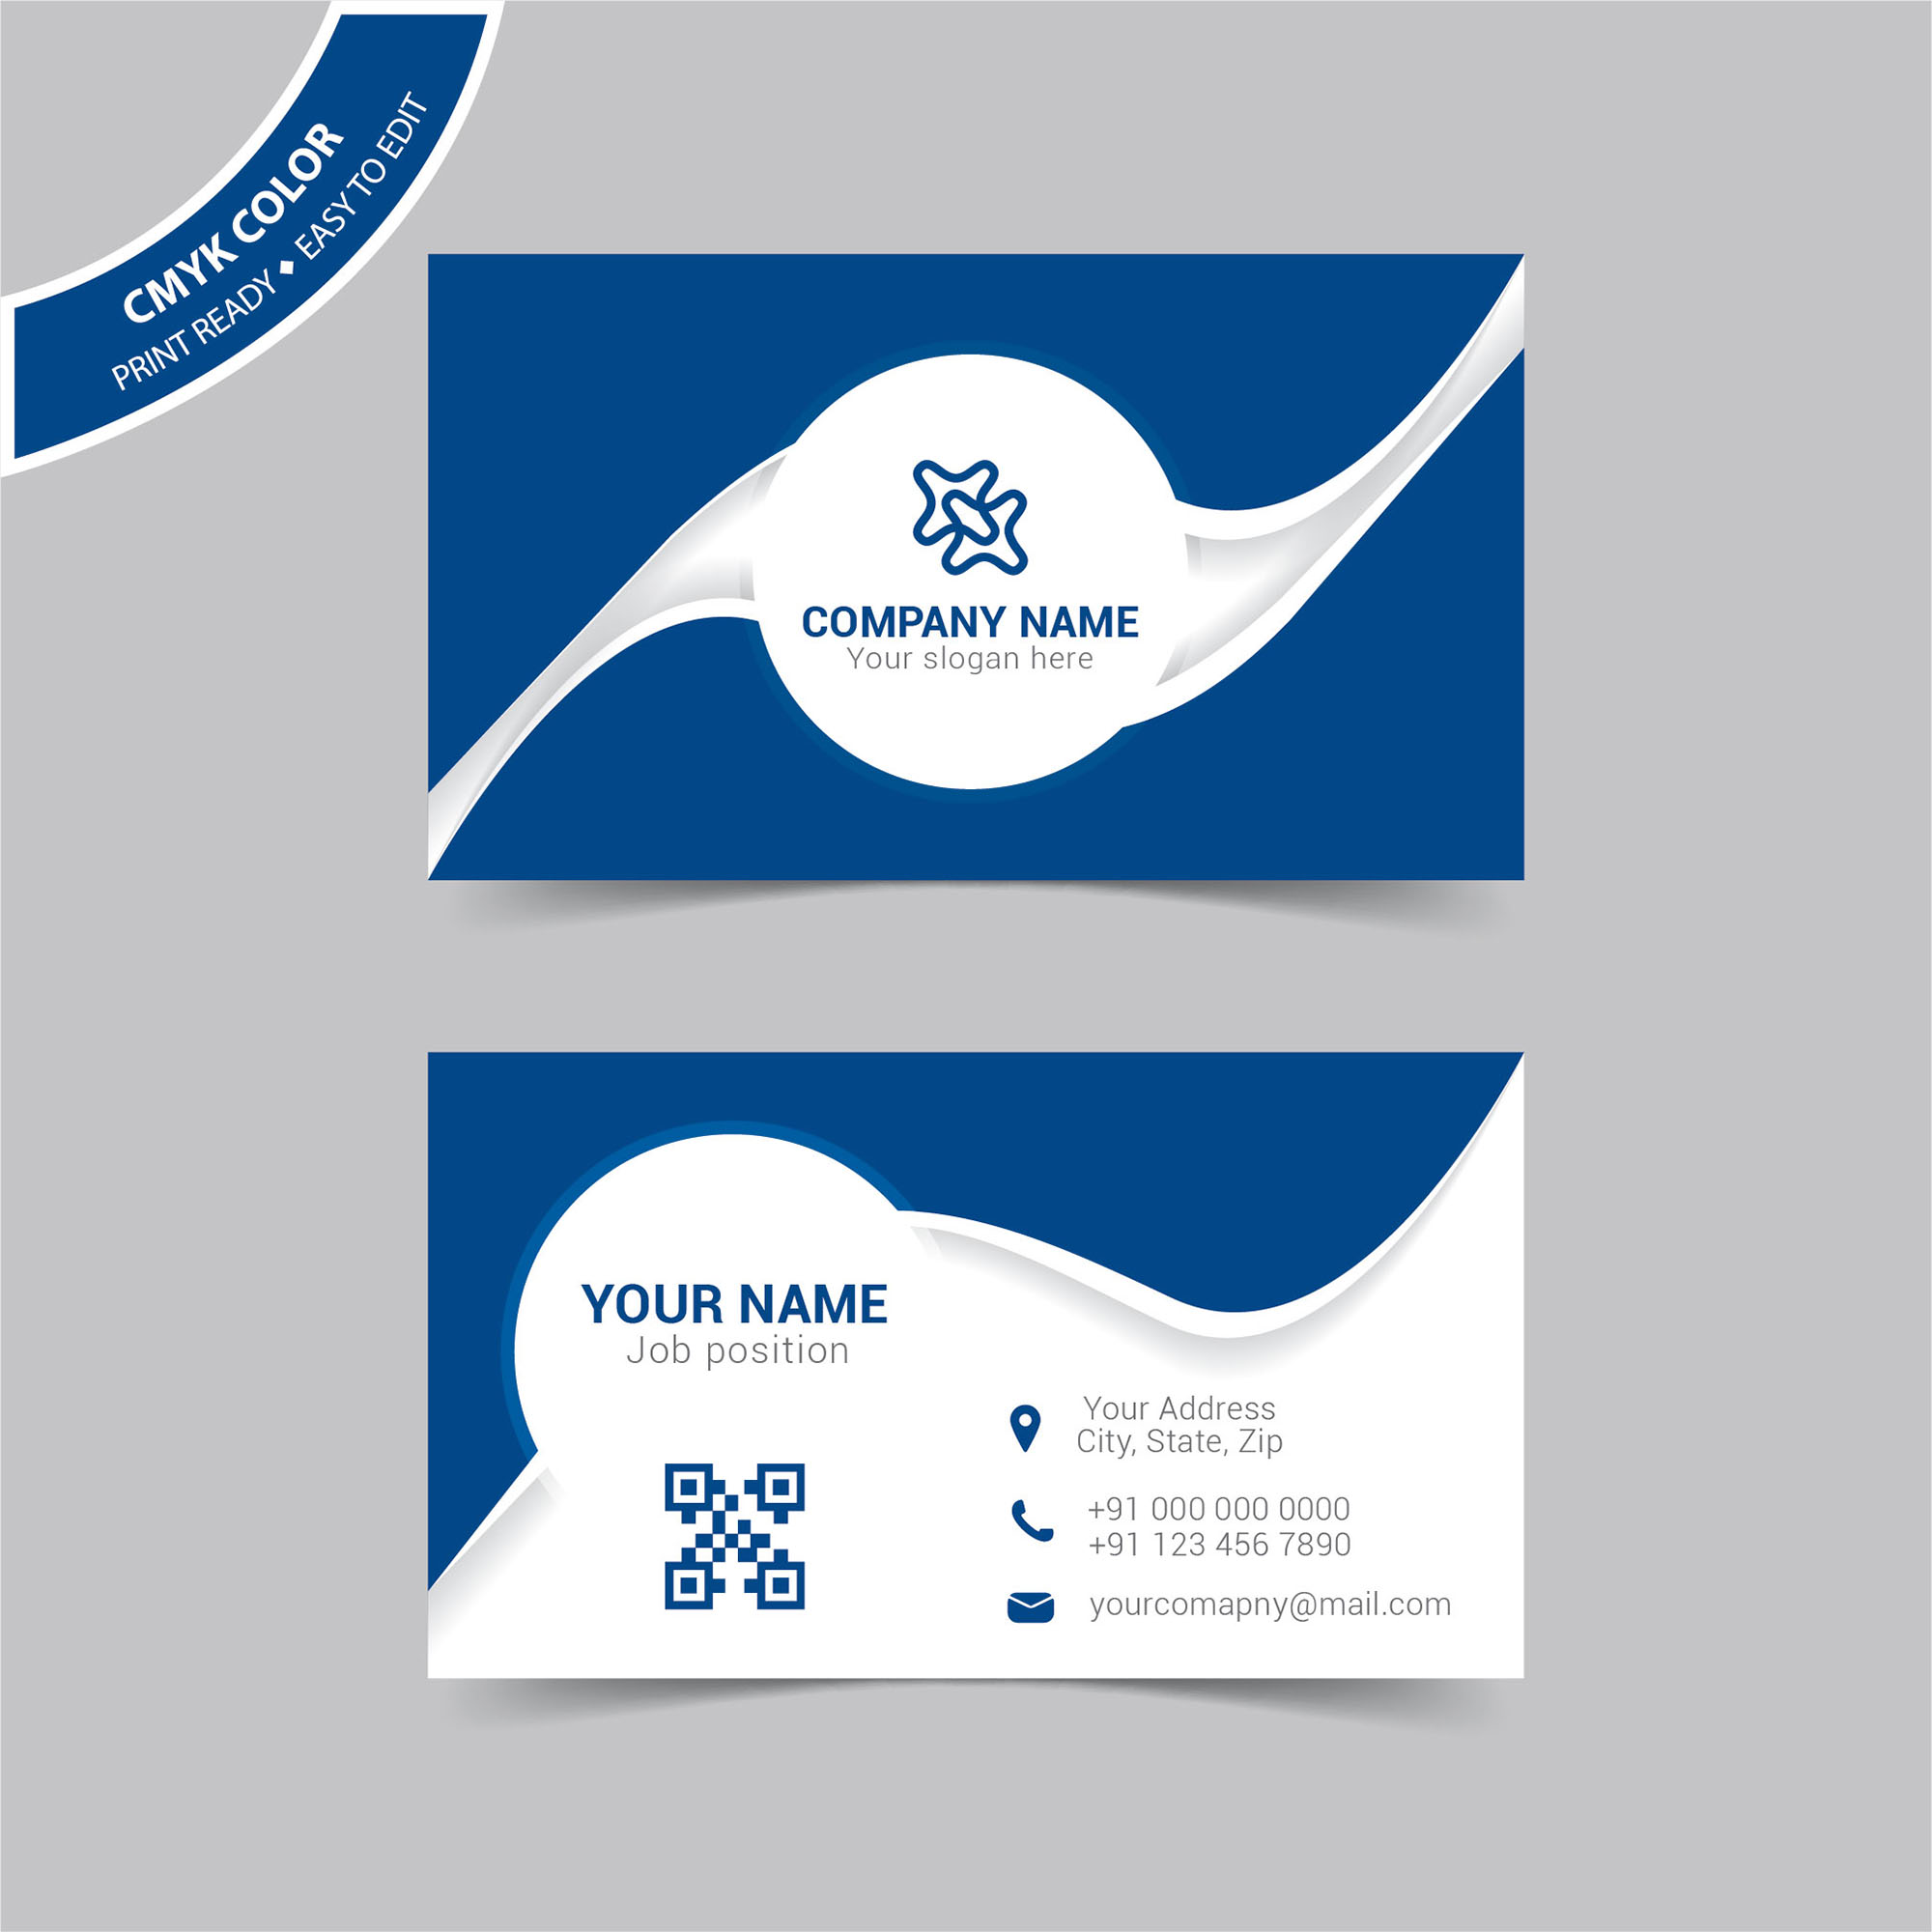 Blue modern business card template free download wisxi business card business cards business card design business card template design templates fbccfo Image collections